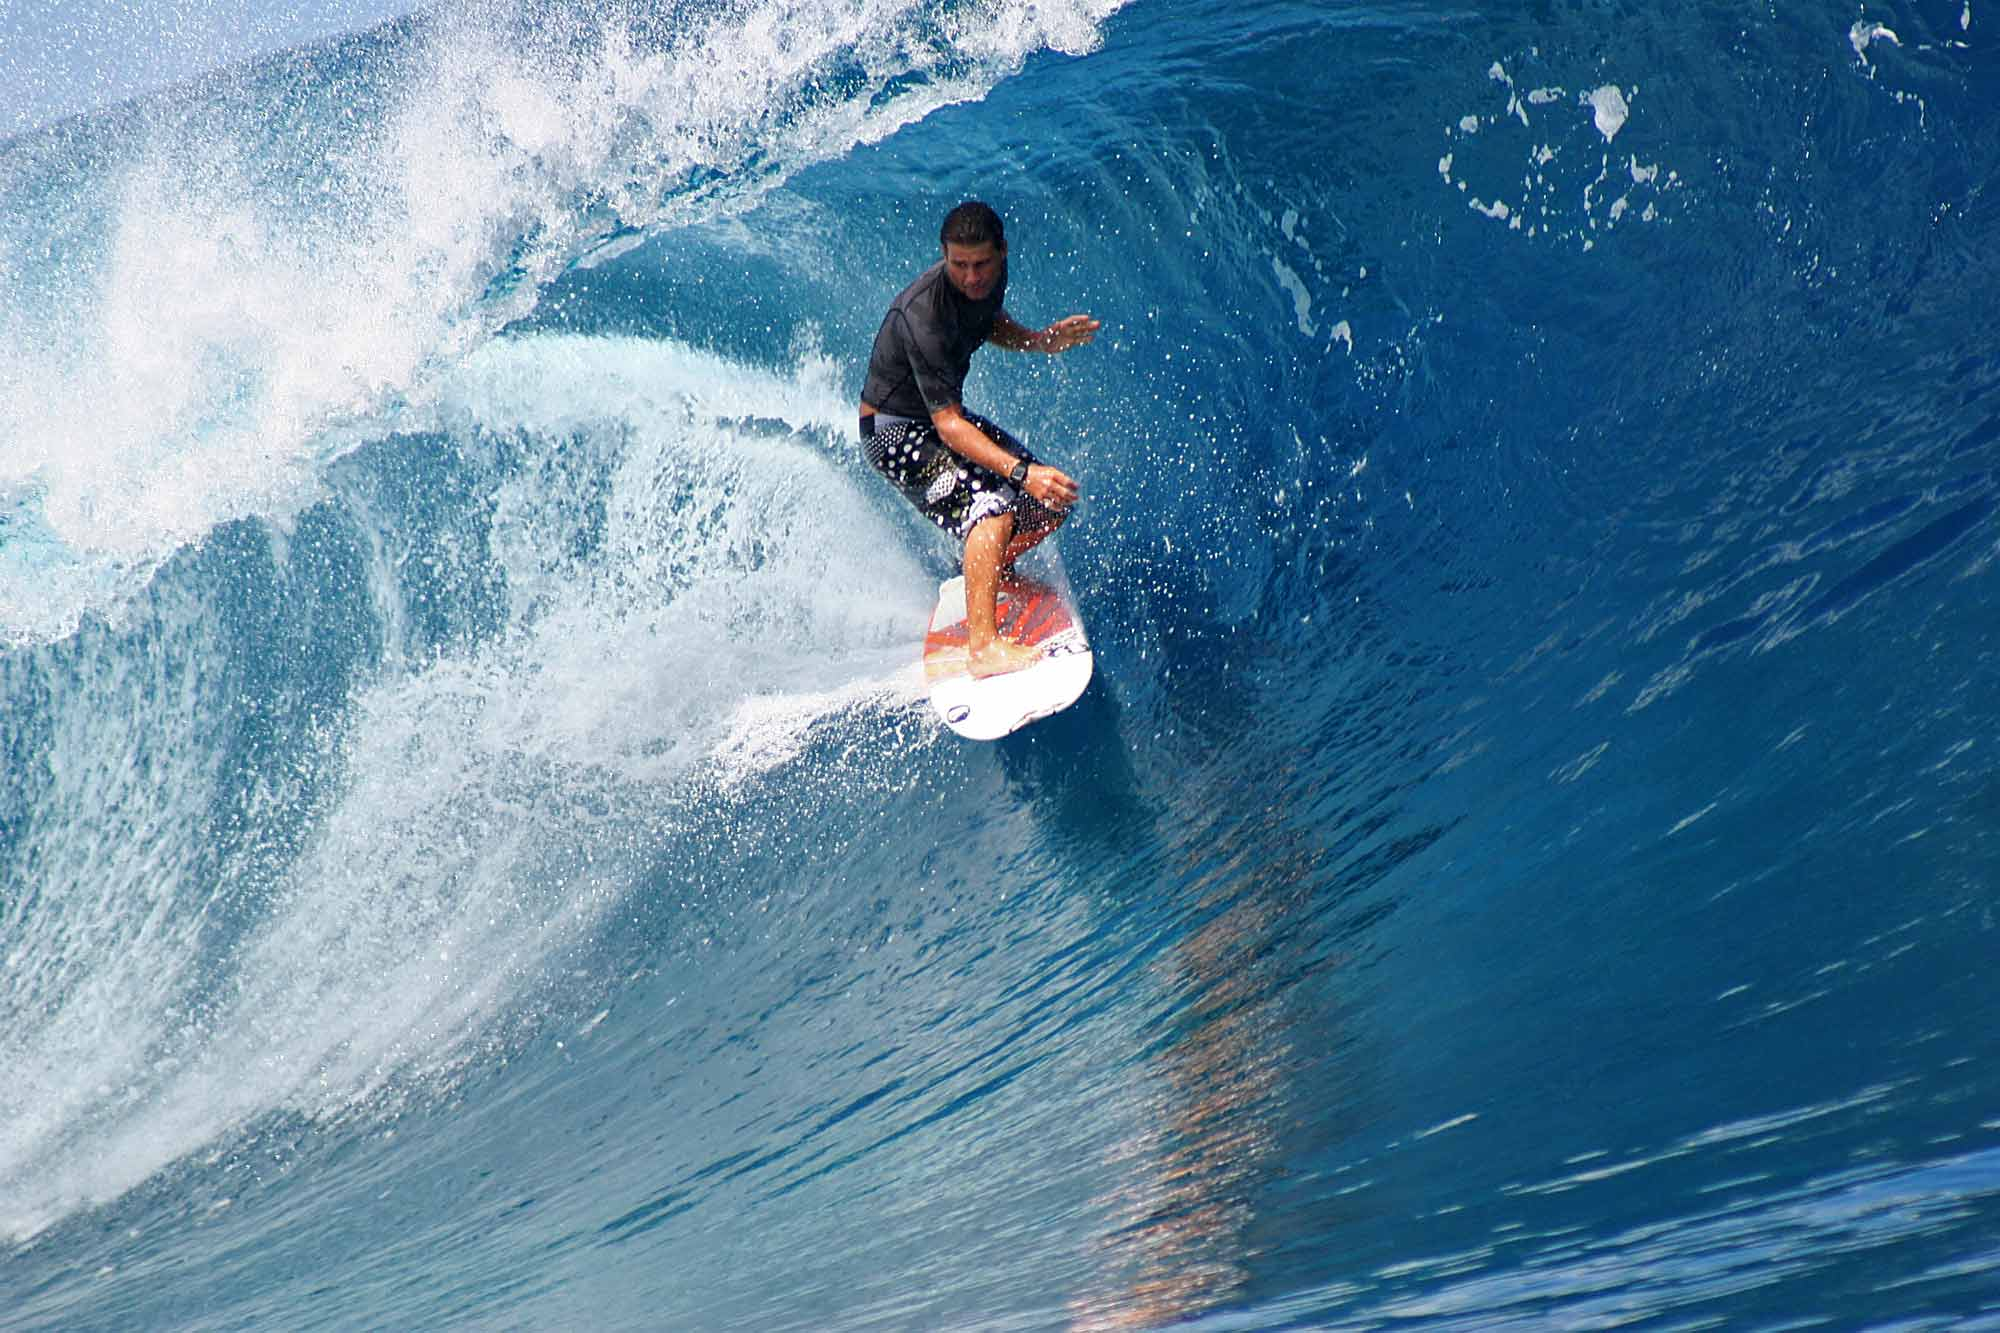 surfer-teahupoo-tahiti-tube-riding